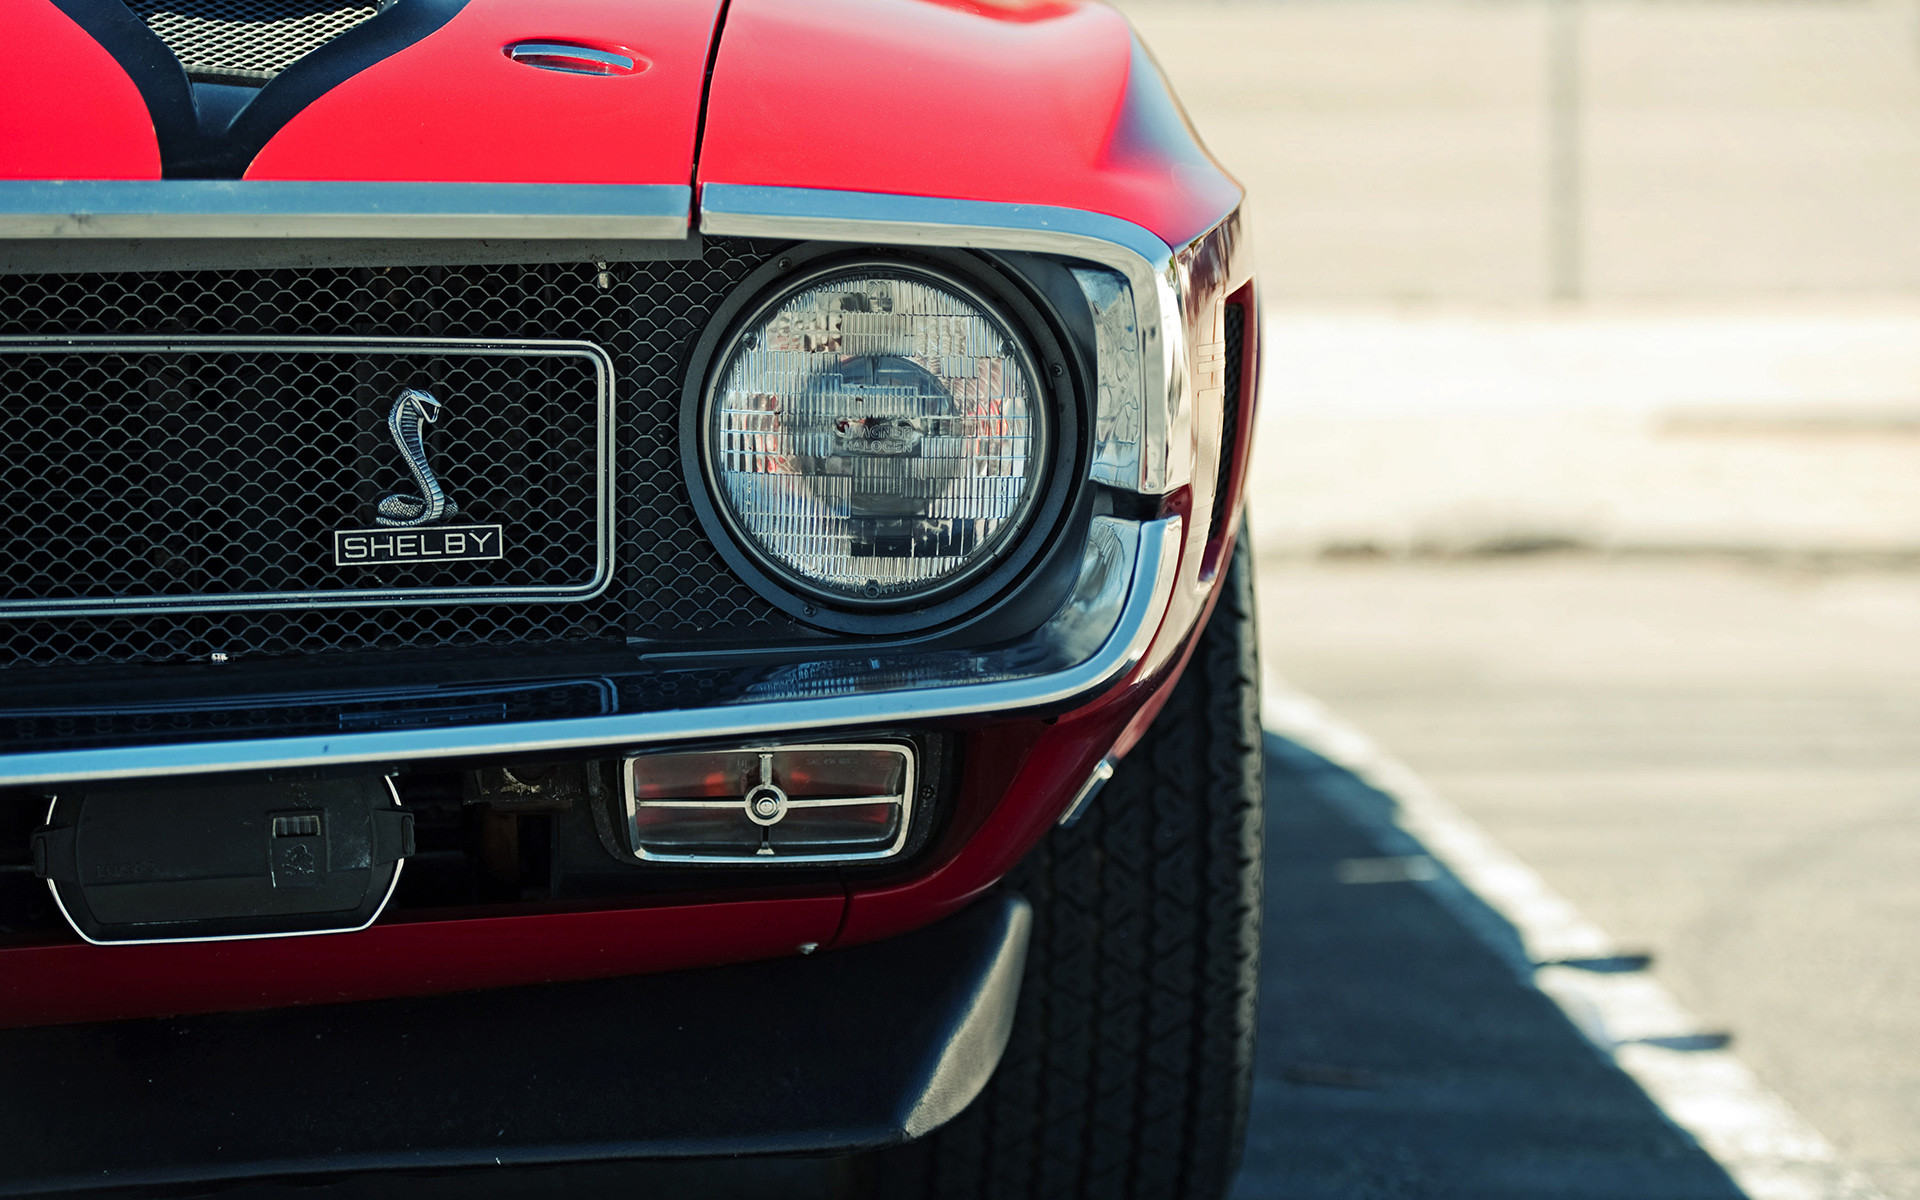 Shelby Mustang Wallpaper Phone #5Fg